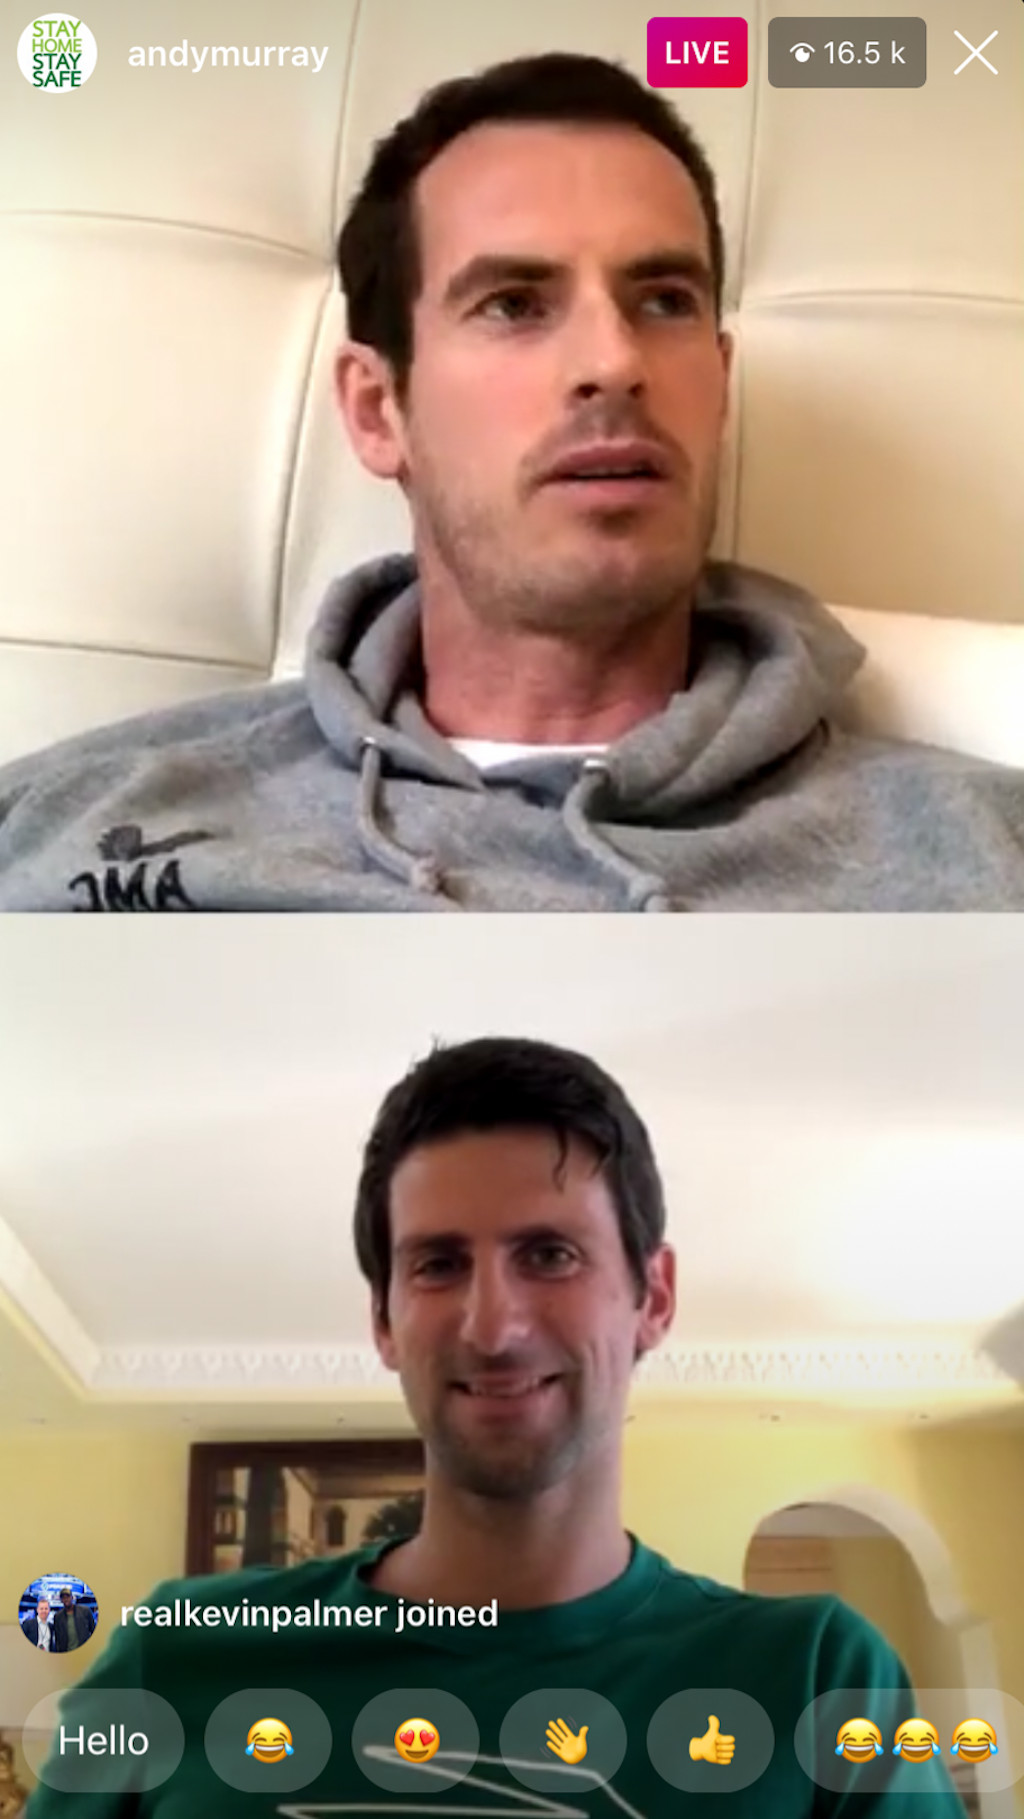 Andy Murray et Novak Djokovic Live Instagram Chat